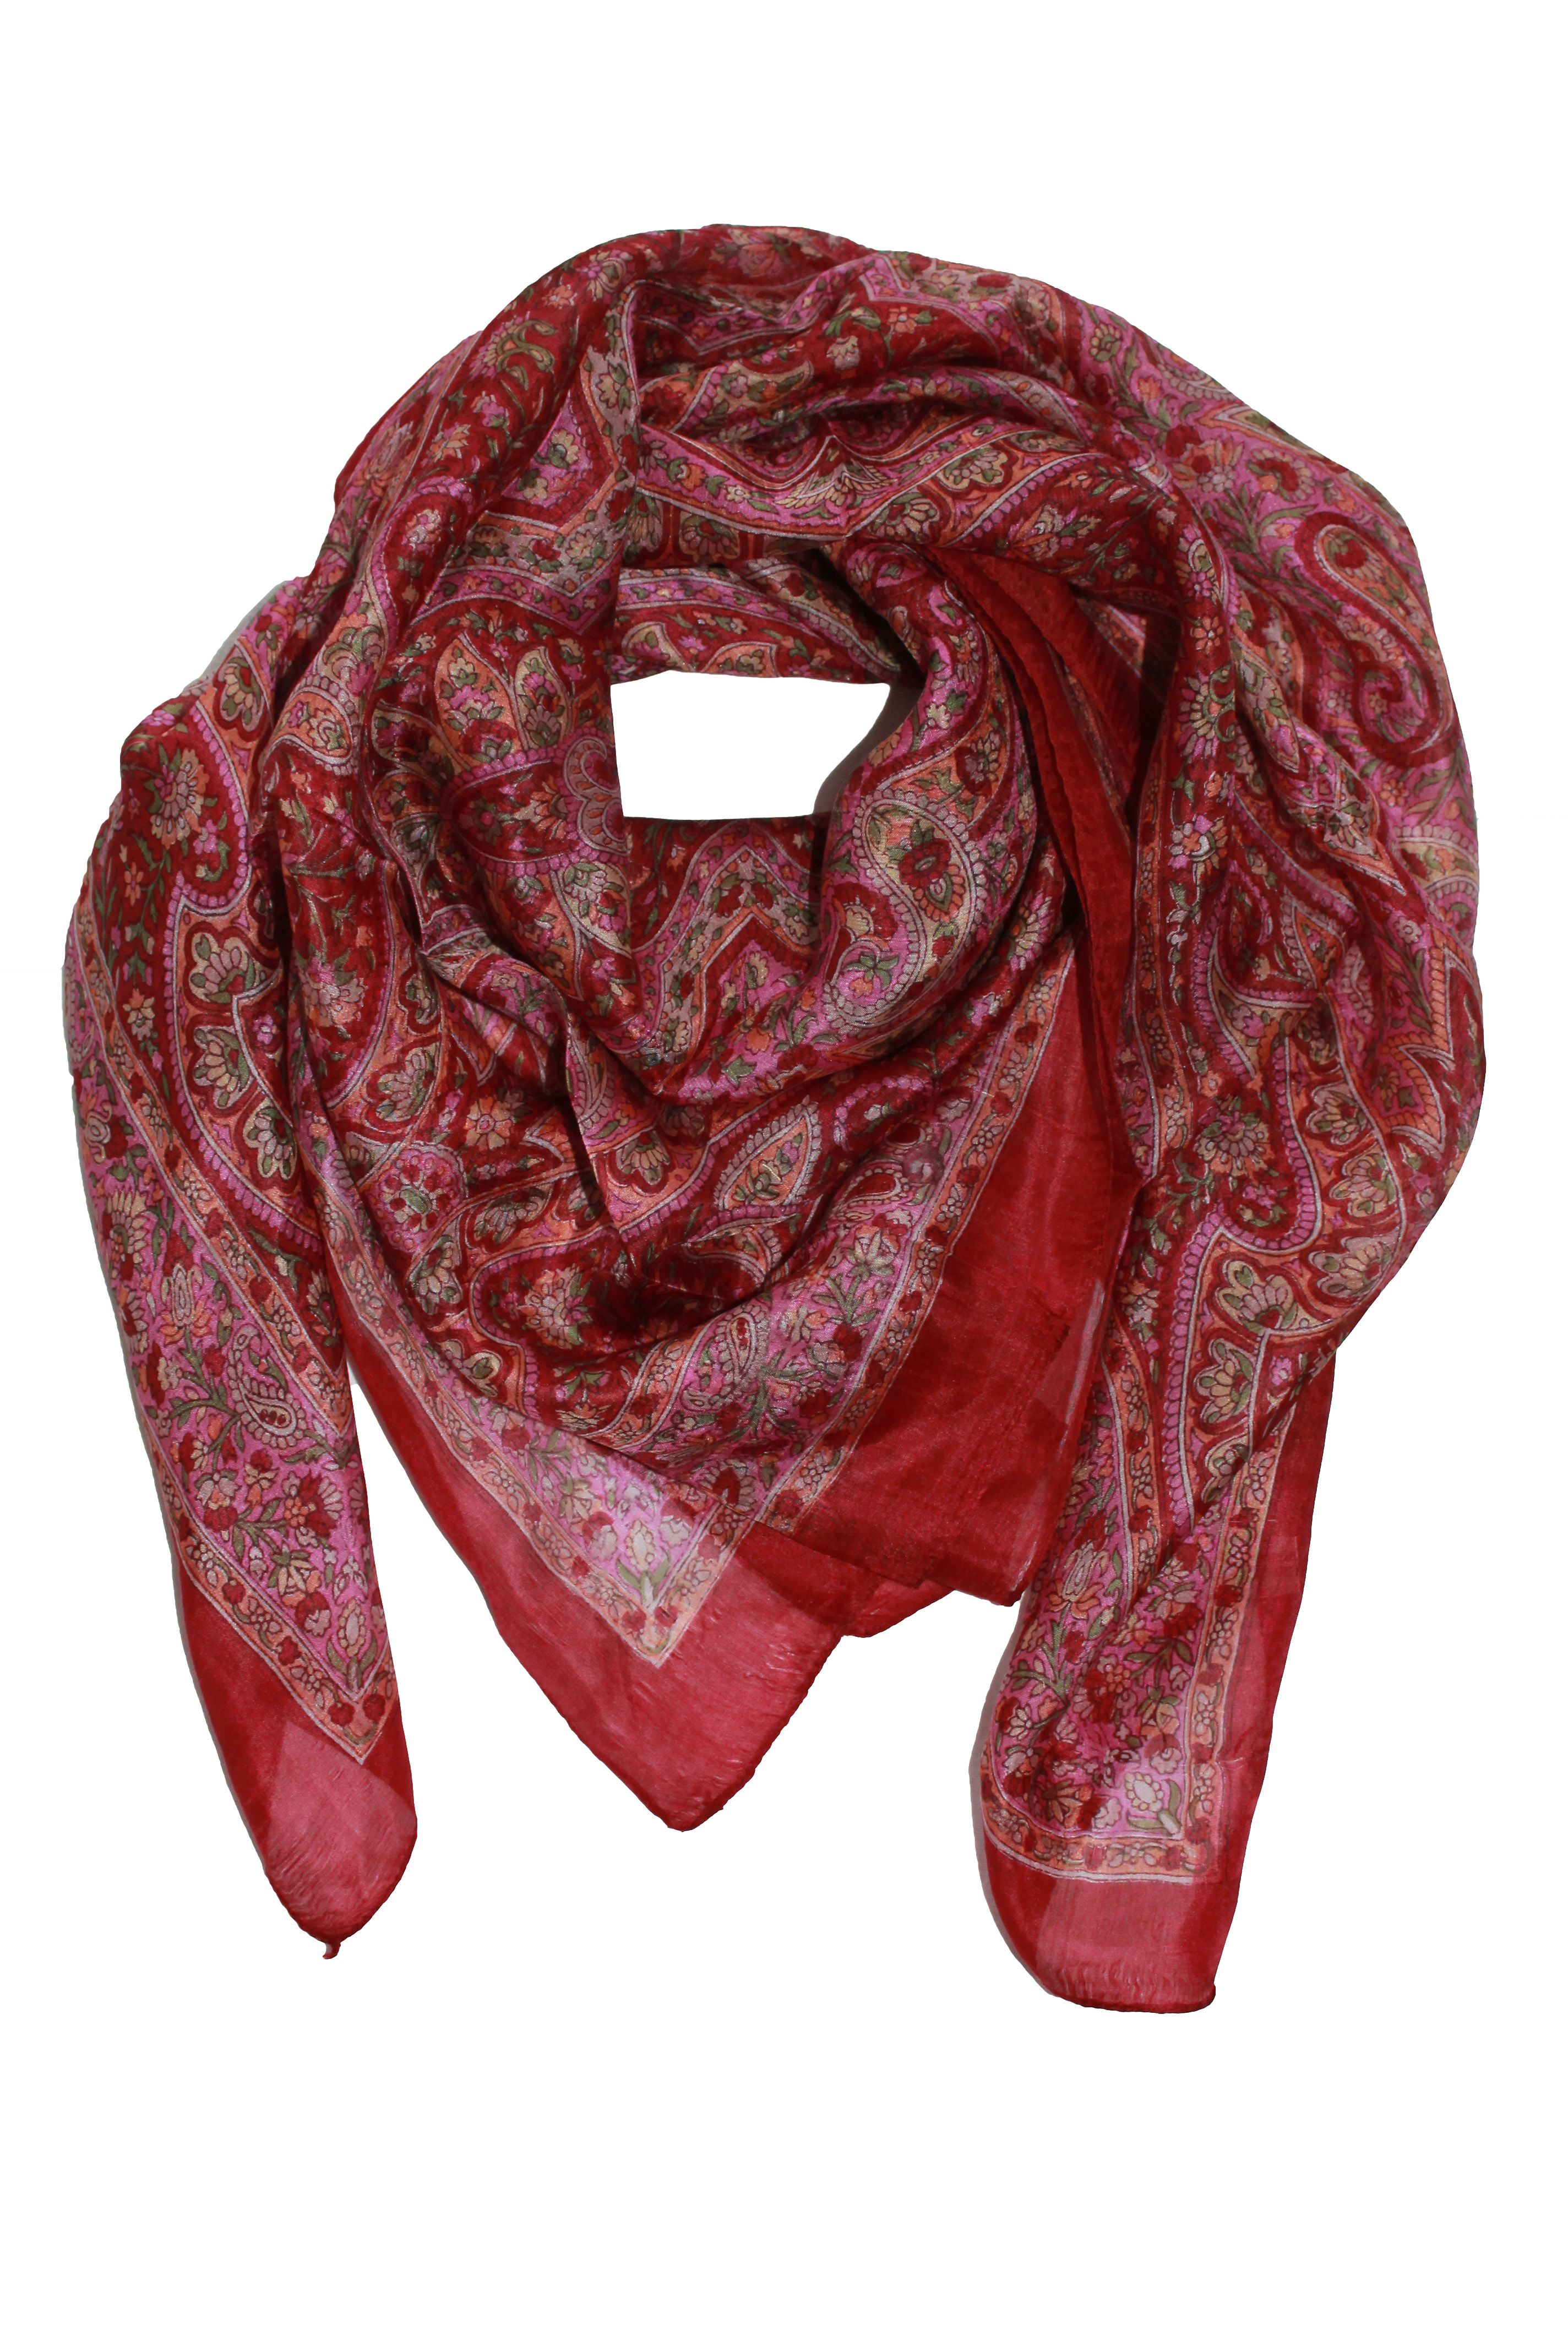 Seidentuch in rot/pink mit Paisley-Muster